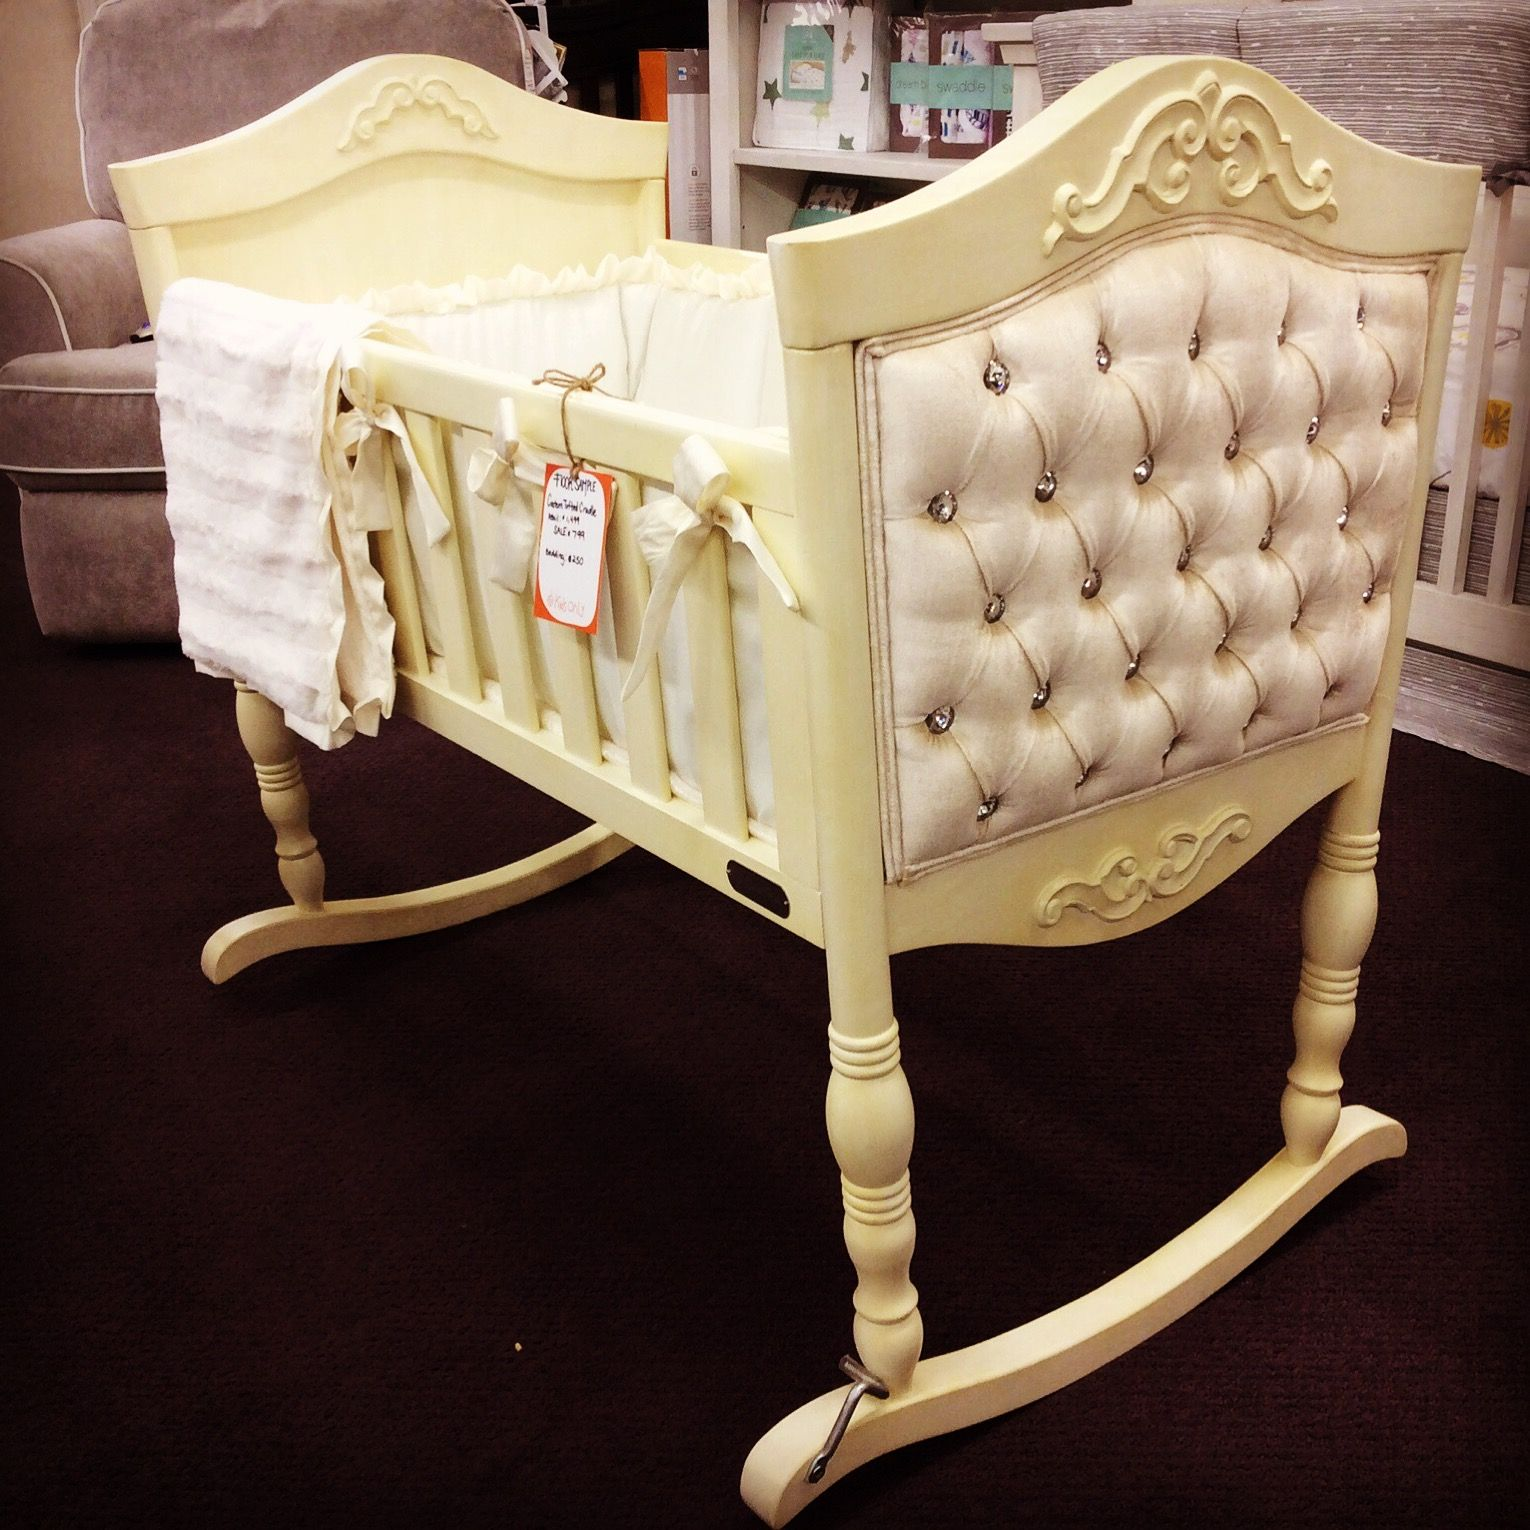 cradle solid in cribs antique tufted beautiful baby with crib custom white construction wood pin crystals made using